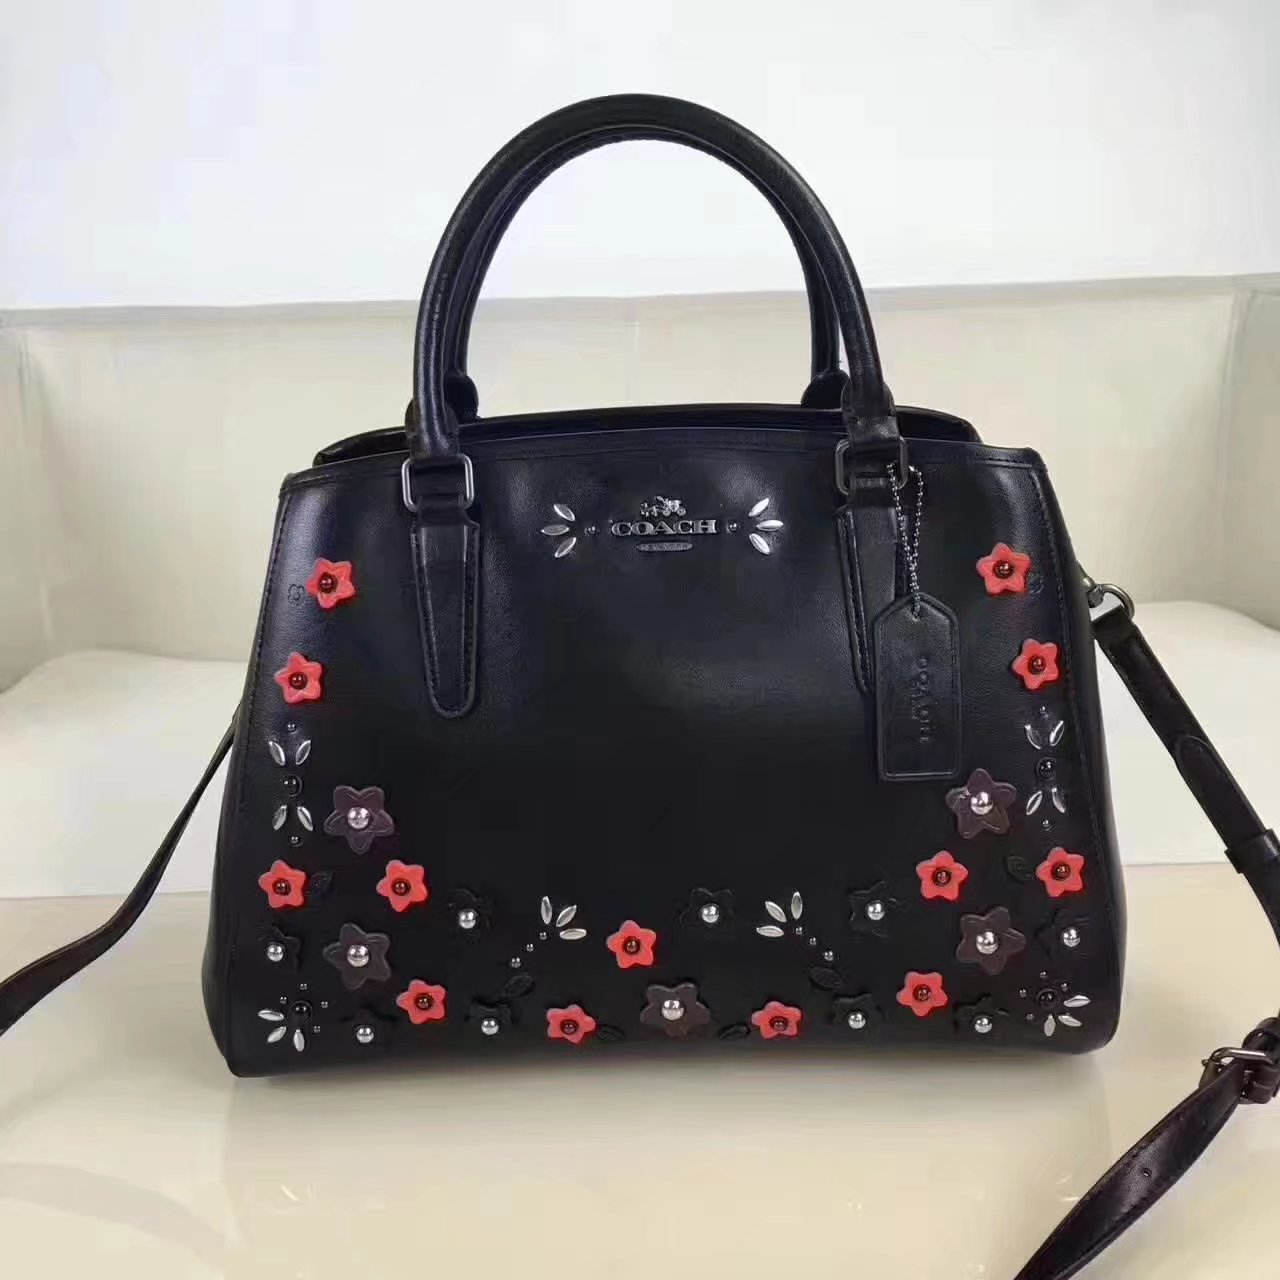 Coach Women Black Leather Tote Bag With Flower